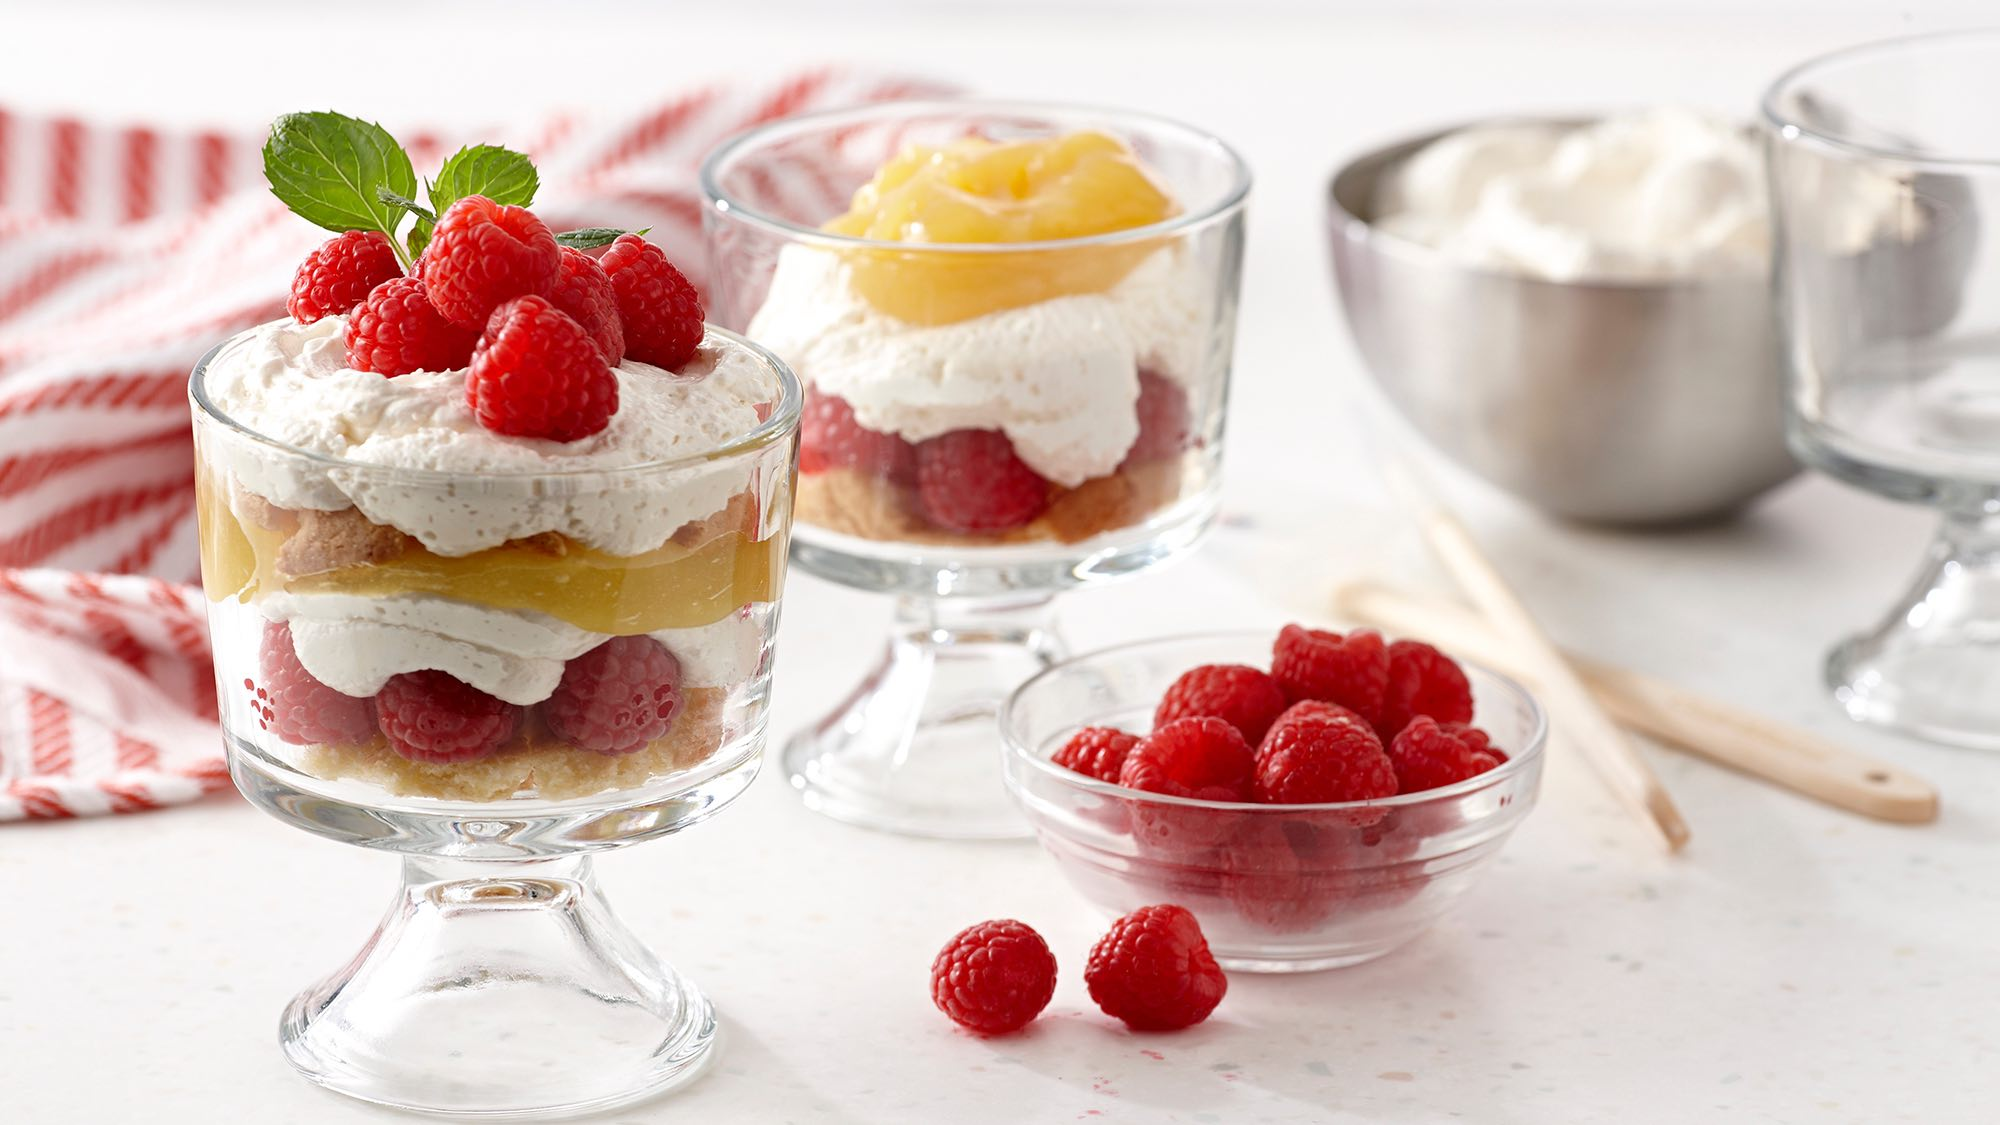 McCormick Raspberry Parfaits